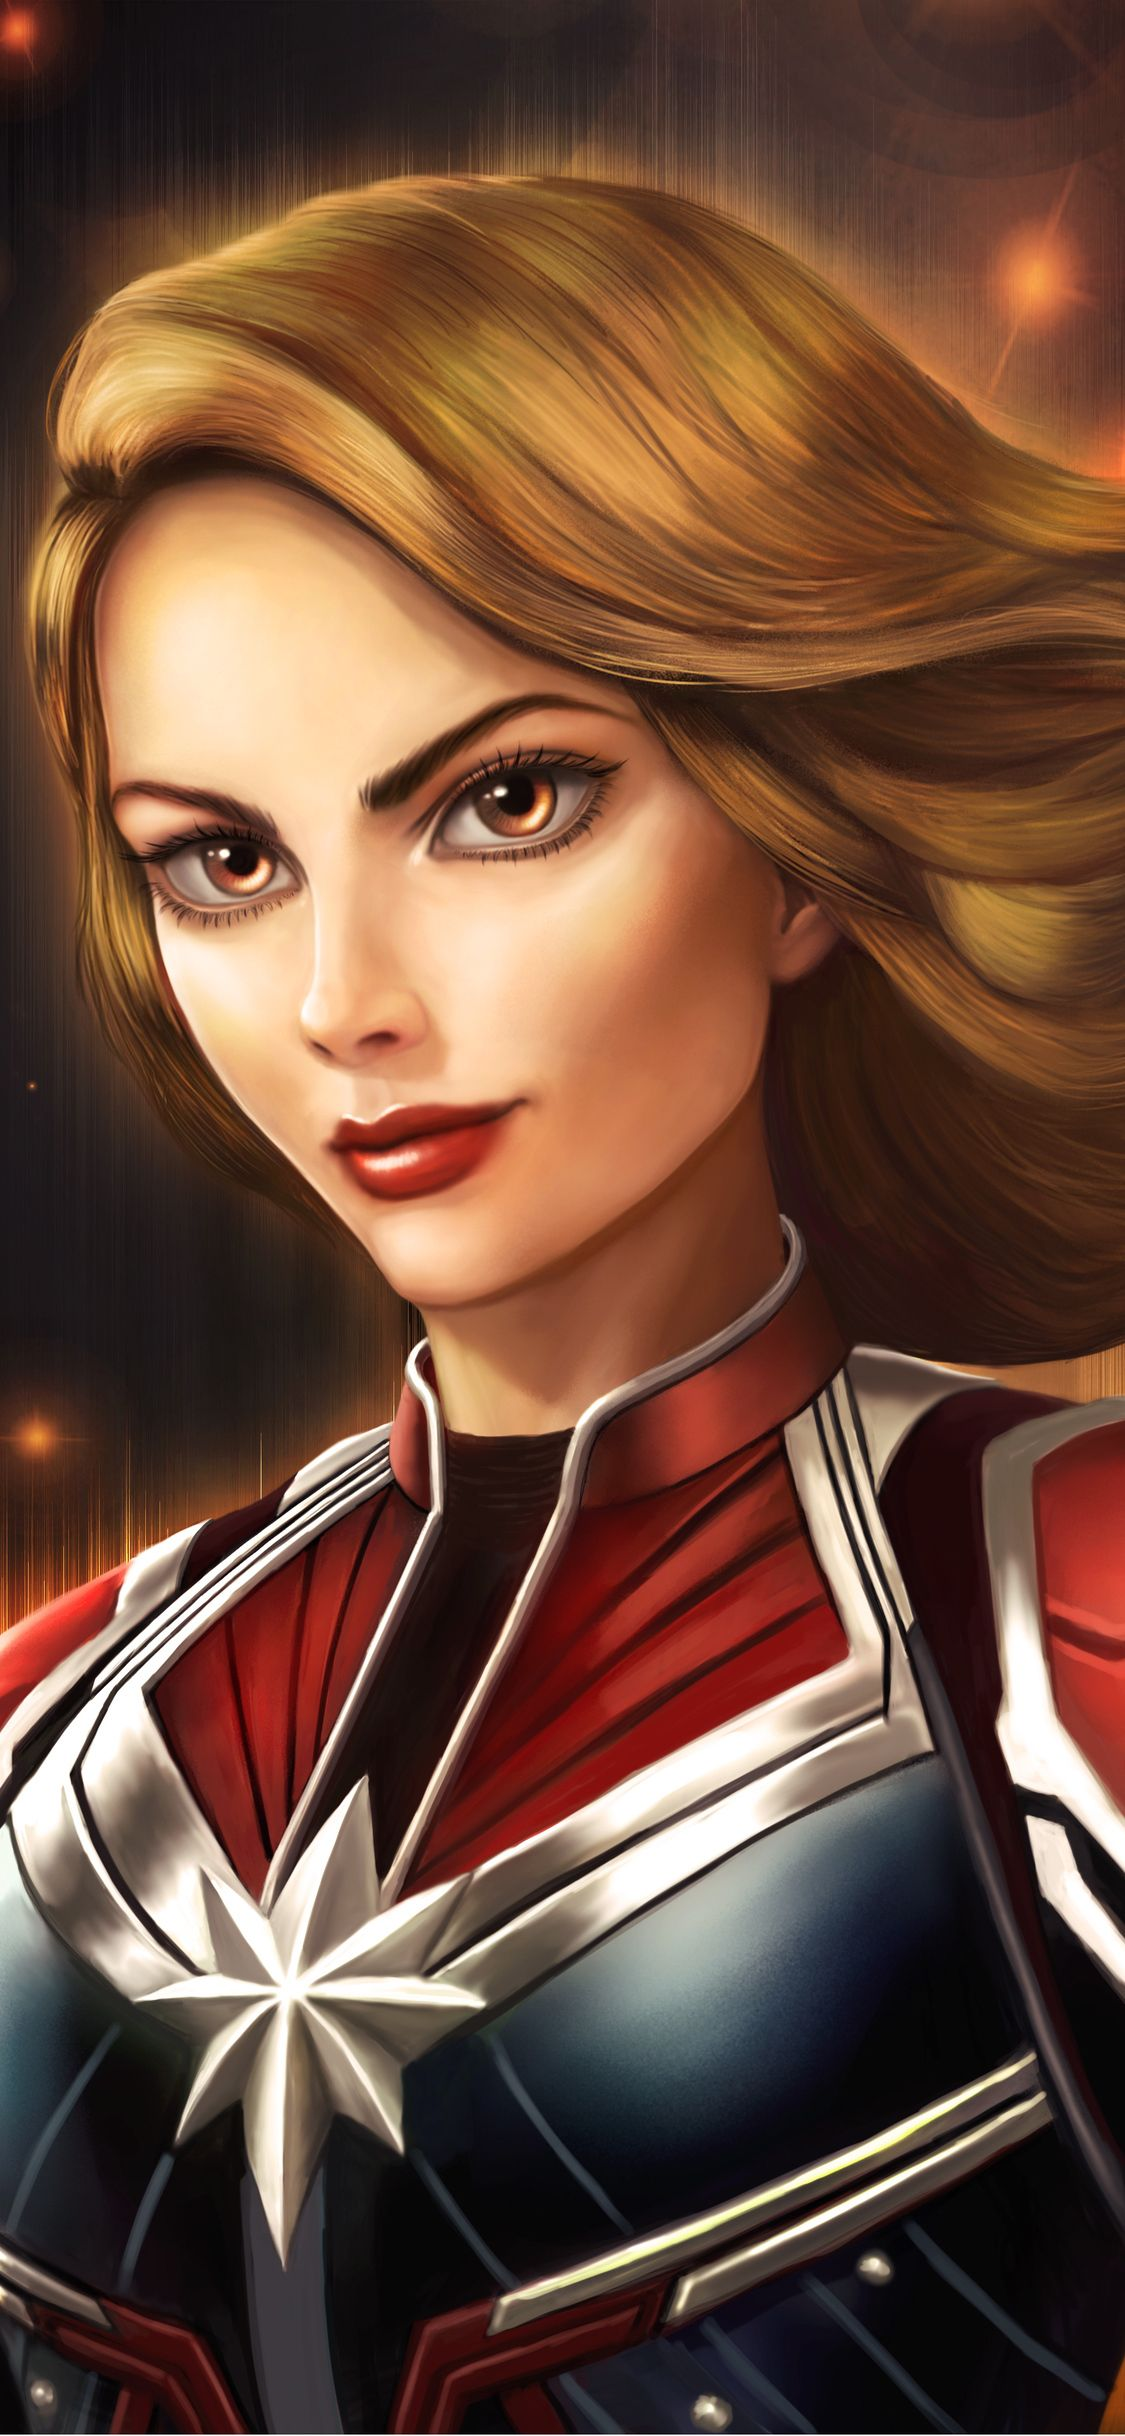 1125x2436 Captain Marvel New Art Iphone Xs Iphone 10 Iphone X Hd 4k Wallpapers Images Backgrounds Photos And Pictu Captain Marvel Marvel Marvel 4k Wallpaper